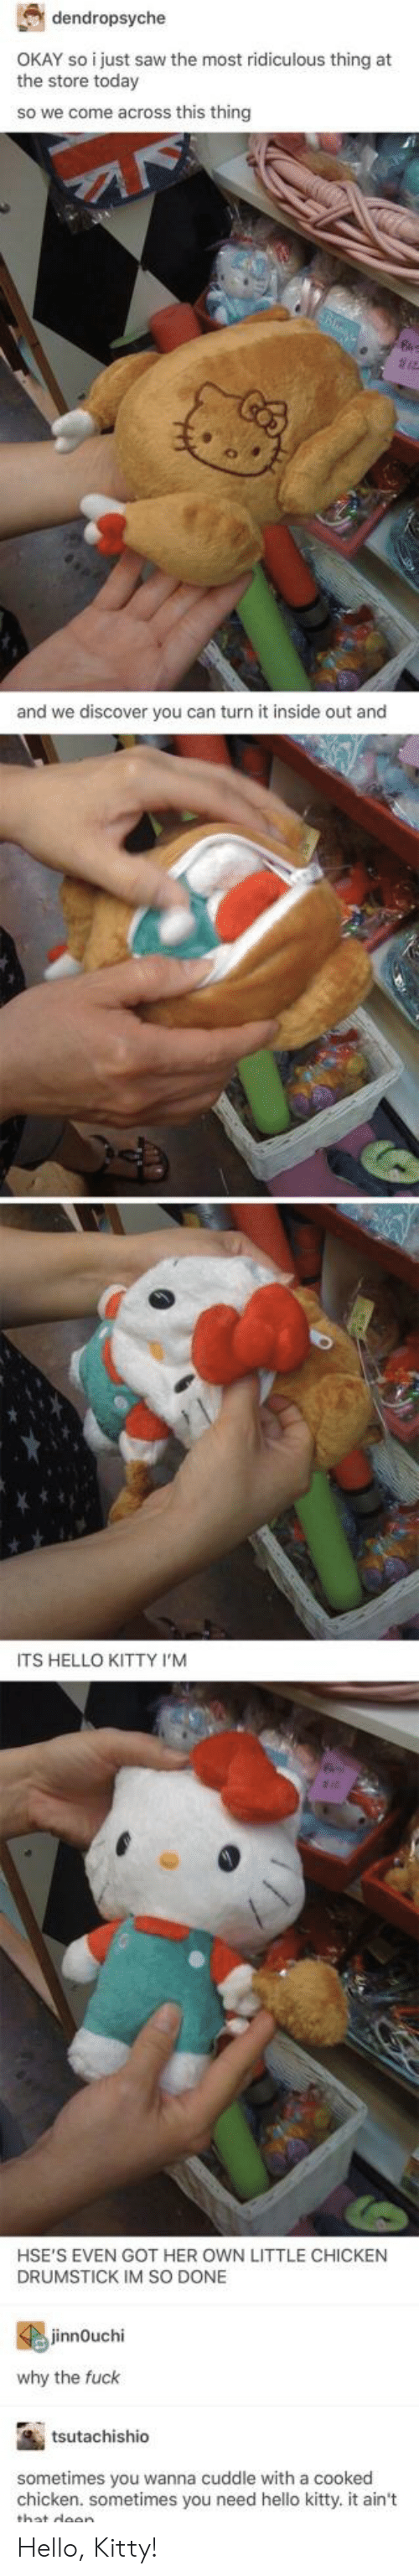 Hello Kitty: dendropsyche  OKAY so i just saw the most ridiculous thing at  the store today  so we come across this thingg  and we discover you can turn it inside out and  ITS HELLO KITTY I'M  HSE'S EVEN GOT HER OWN LITTLE CHICKEN  DRUMSTICK IM SO DONE  jinnOuchi  why the fuck  tsutachishio  sometimes you wanna cuddle with a cooked  chicken. sometimes you need hello kitty. it ain't  wllo kittyit an Hello, Kitty!